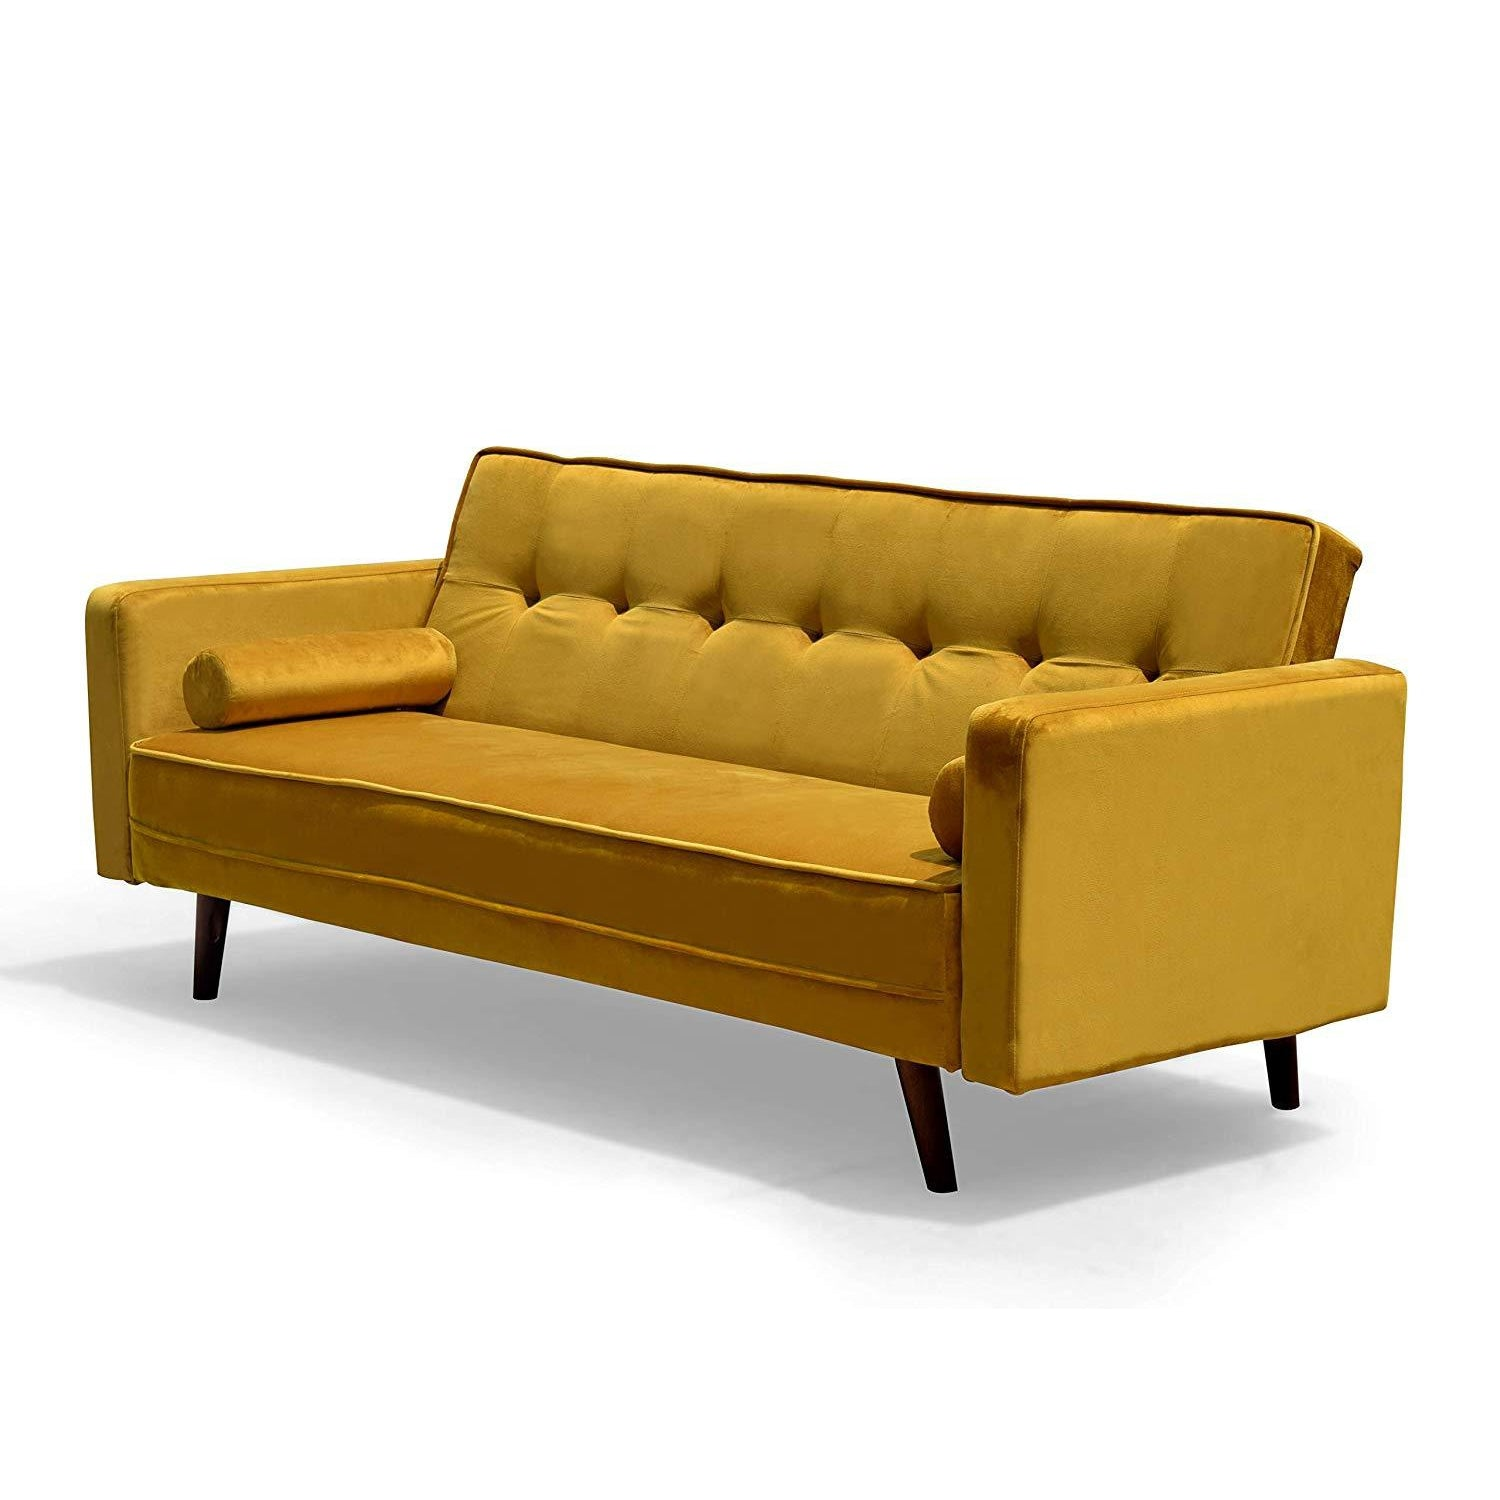 NORA 3-Seater Fabric Sofa Bed Sleeper Sofa with Cushions, Mustard Yellow Velvet